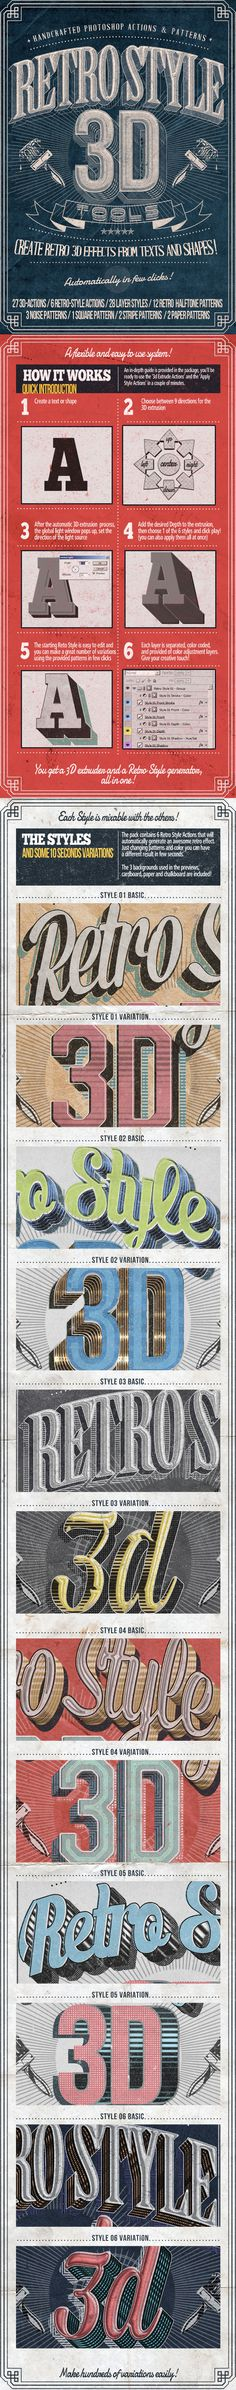 Retro Style 3D Tools – Photoshop Actions #retro #vintage #poster #3d #typography